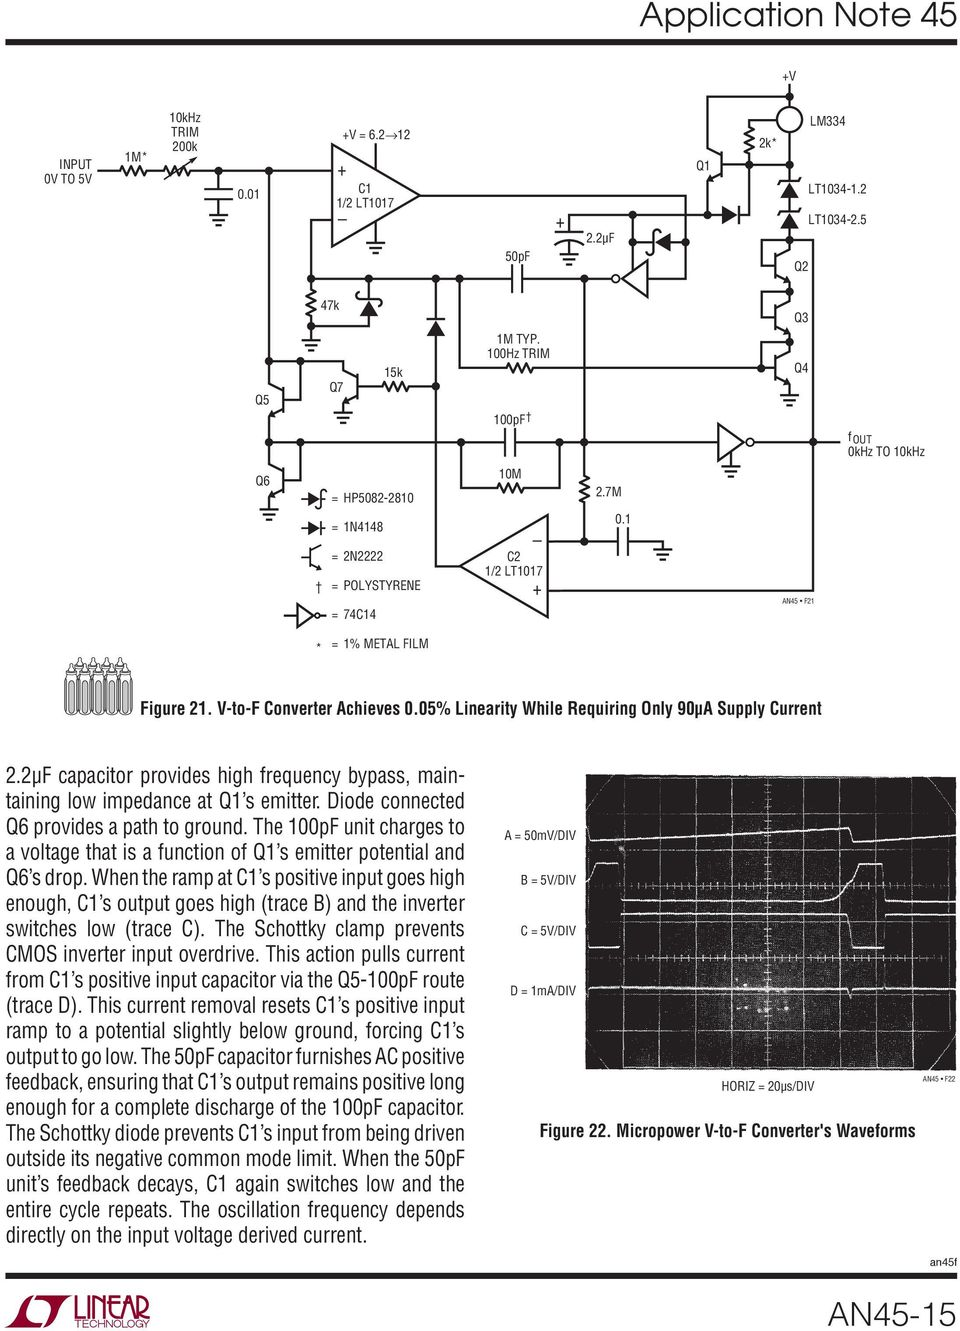 Application Note 45 June Measurement And Control Circuit Collection Lt1006 Precision Single Supply Op Amp Linear Technology The 100pf Unit Charges To A Voltage That Is Function Of Q1 S Emitter Potential